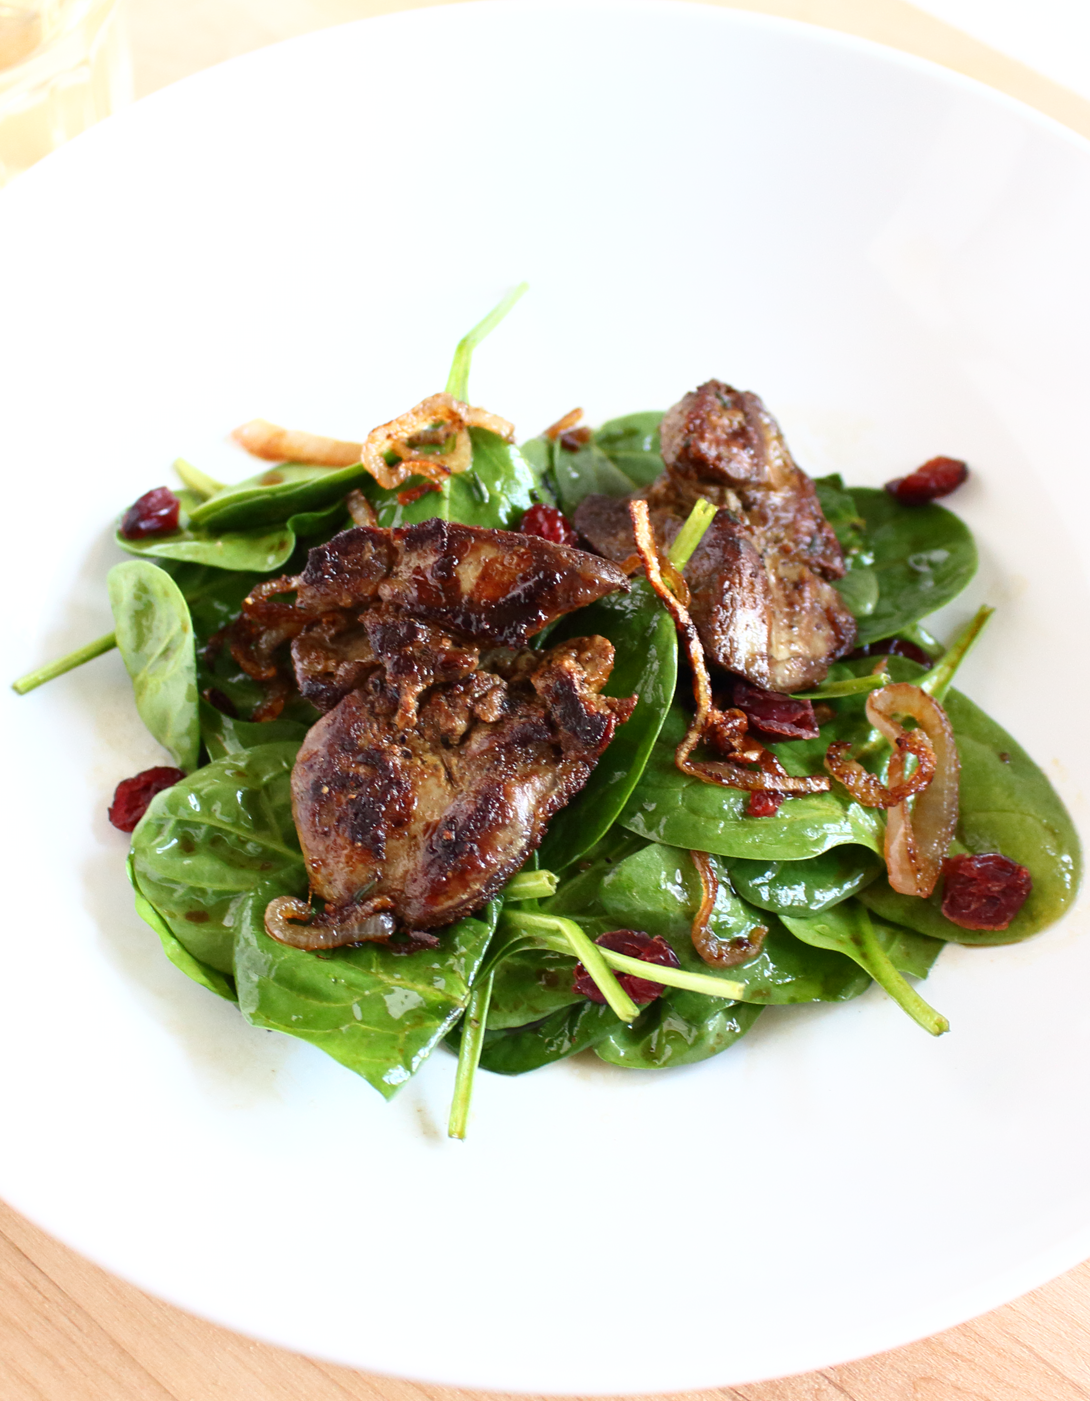 Goat liver with dill leaves indian kitchen cooking recipes - If You Like Chicken Liver This Salad Is Absolutely Delicious The Key Is To